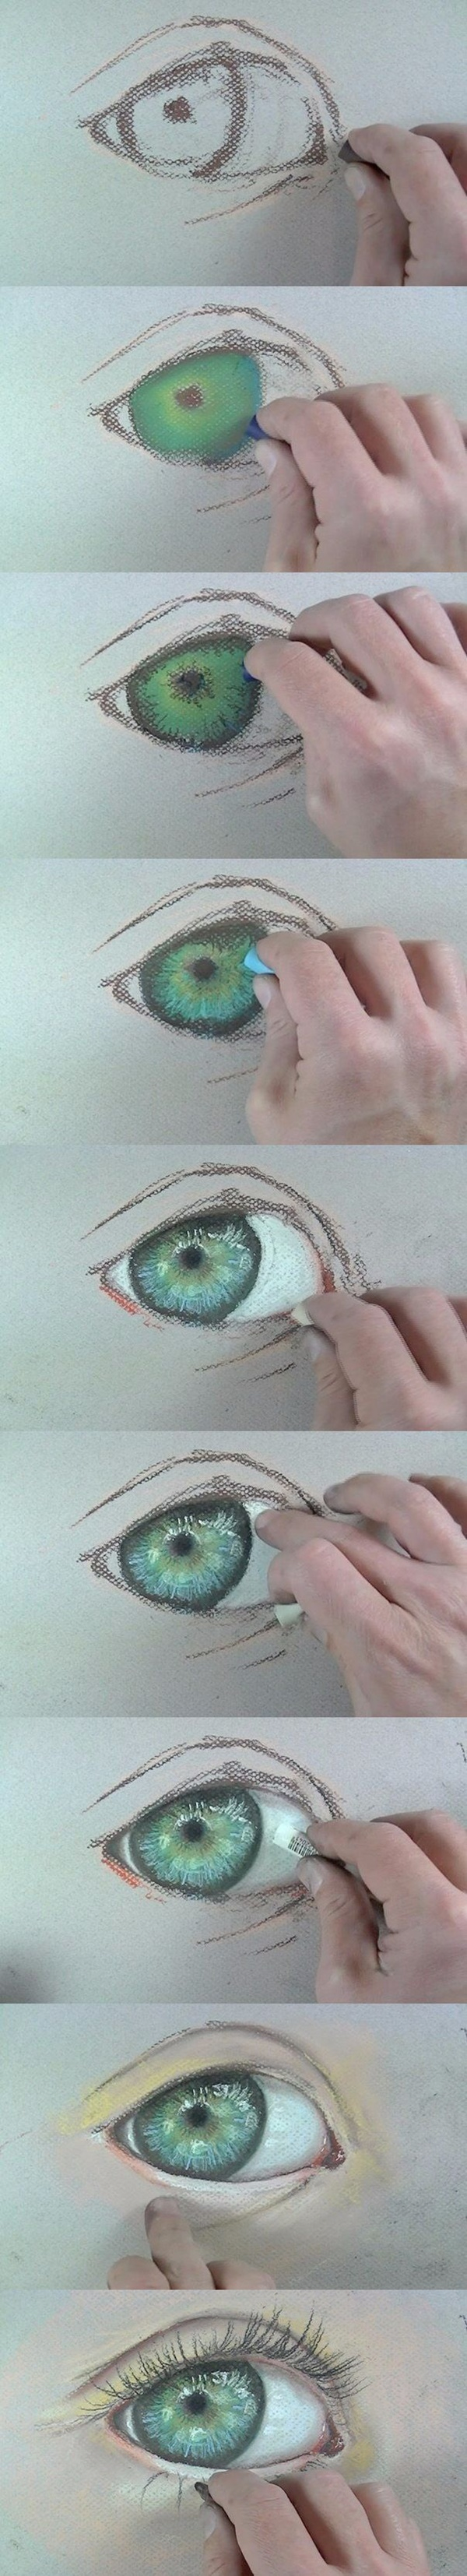 How To Draw An Eye With Crayon